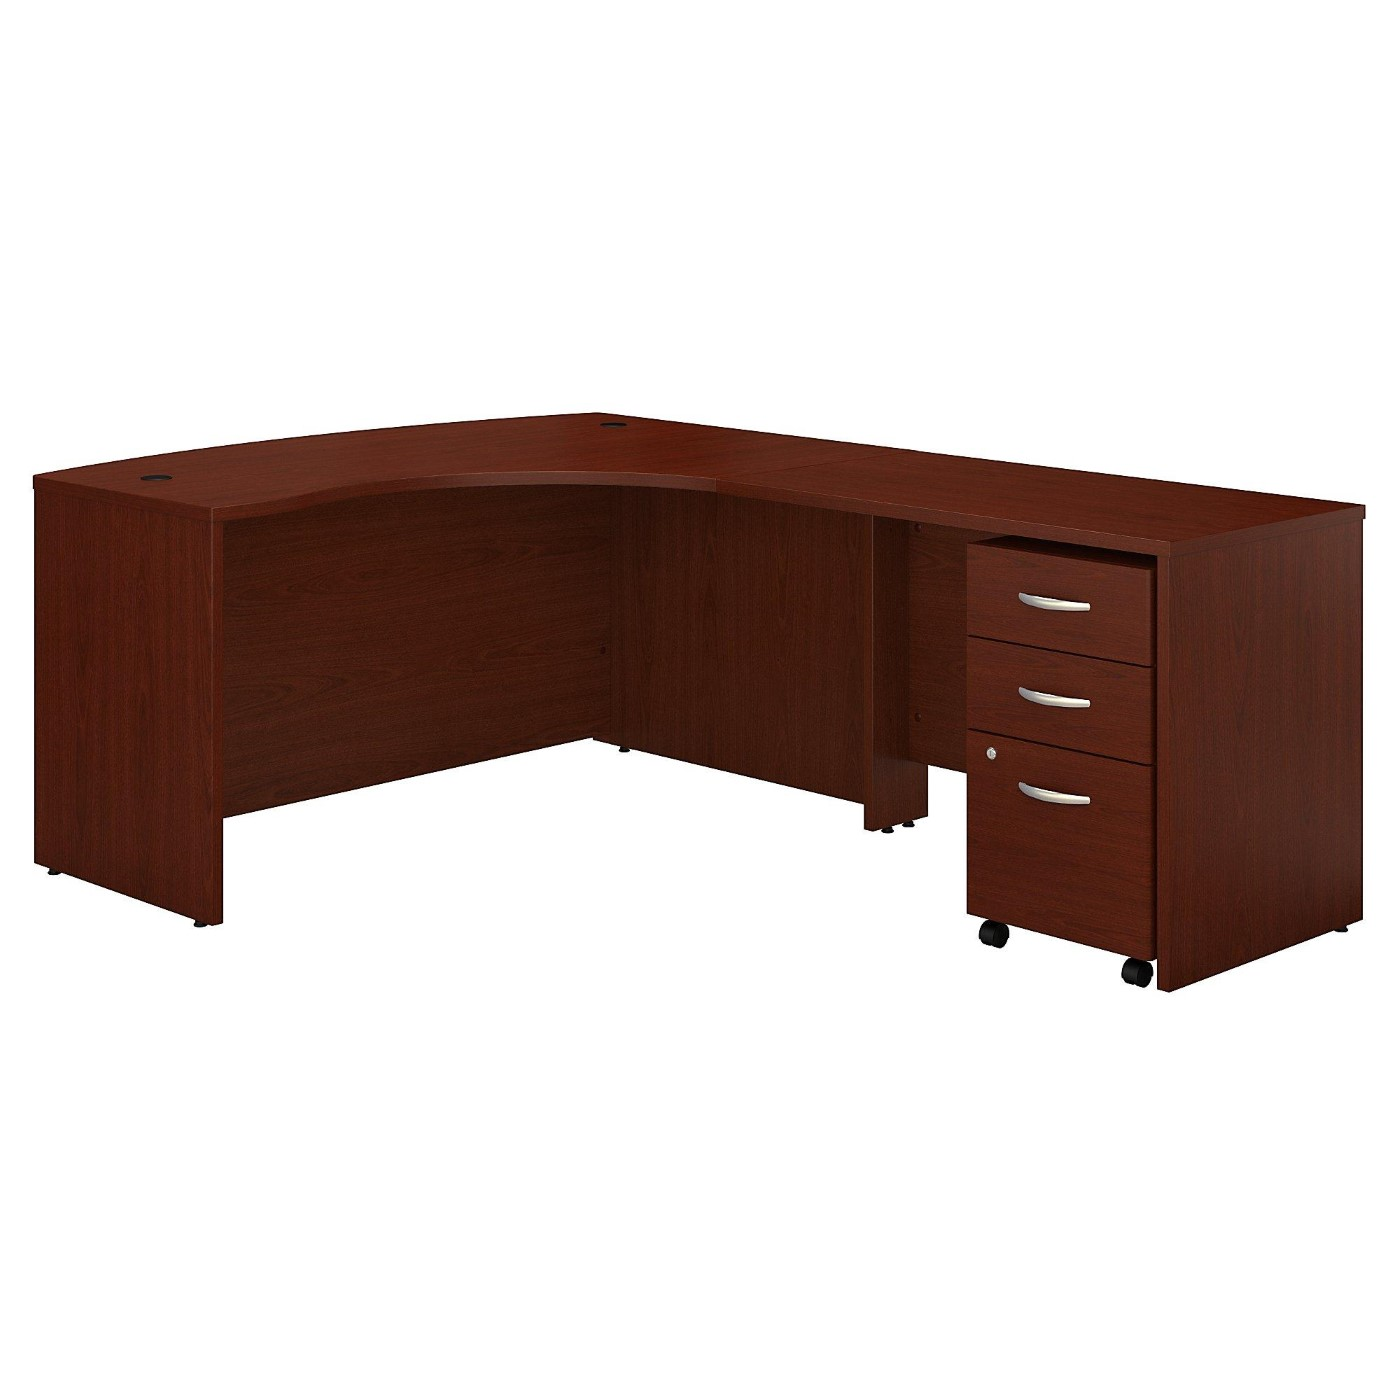 <font color=#c60><b>BUSH BUSINESS FURNITURE SERIES C LEFT HANDED L SHAPED DESK WITH MOBILE FILE CABINET. FREE SHIPPING</font></b></font></b>